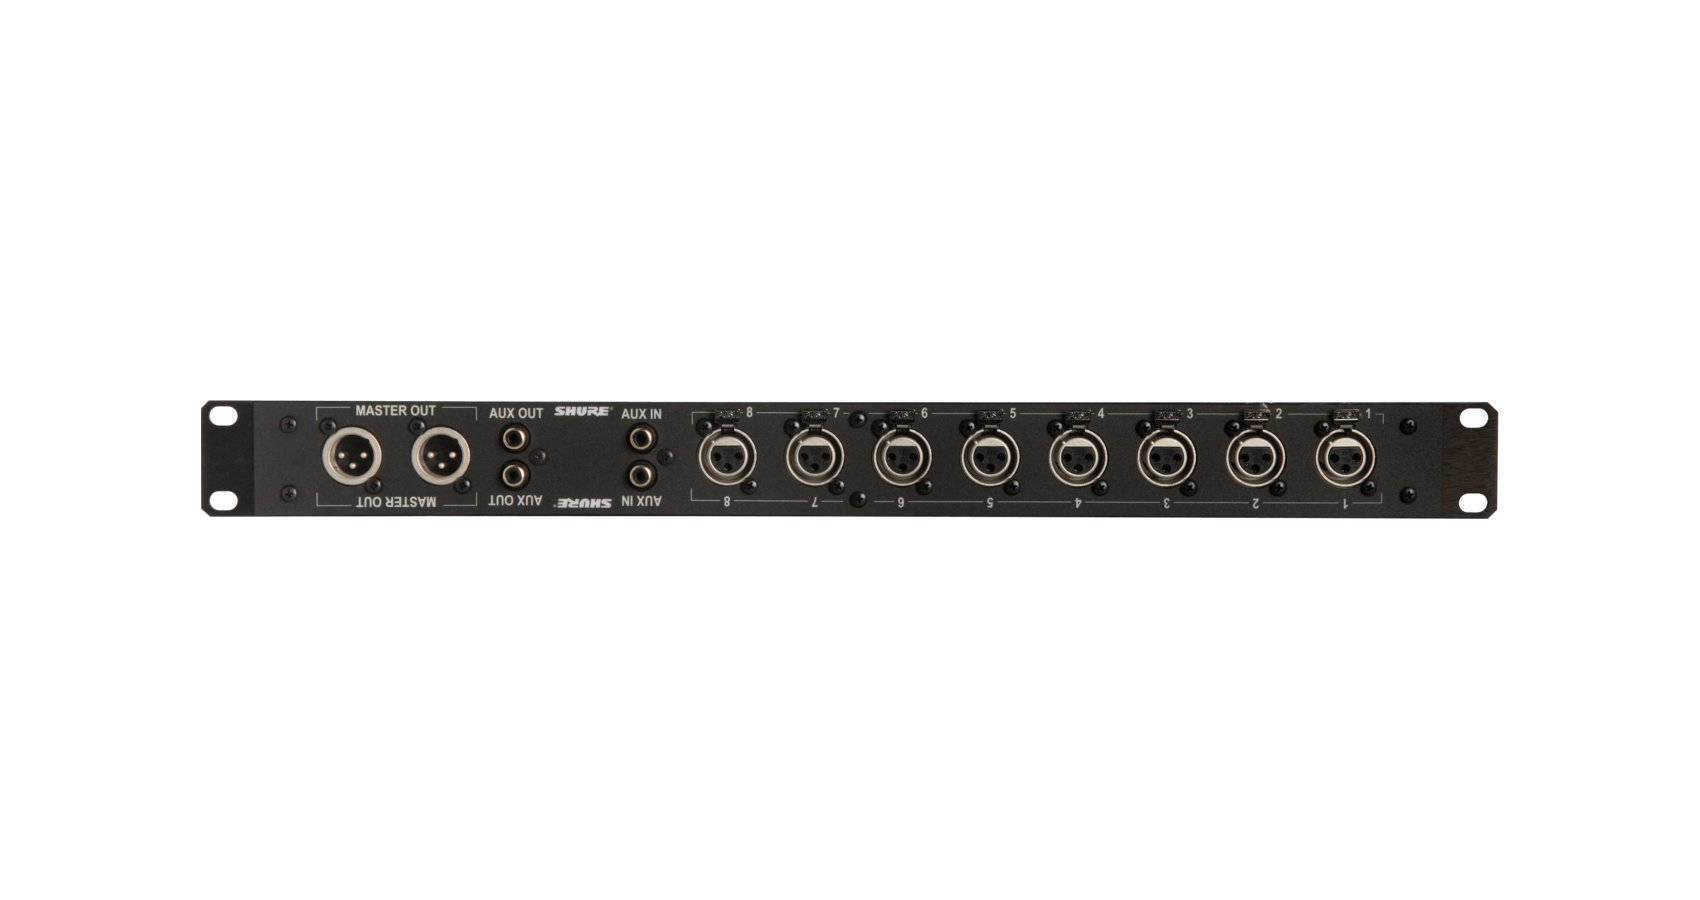 Rack Mount XLR connector panel